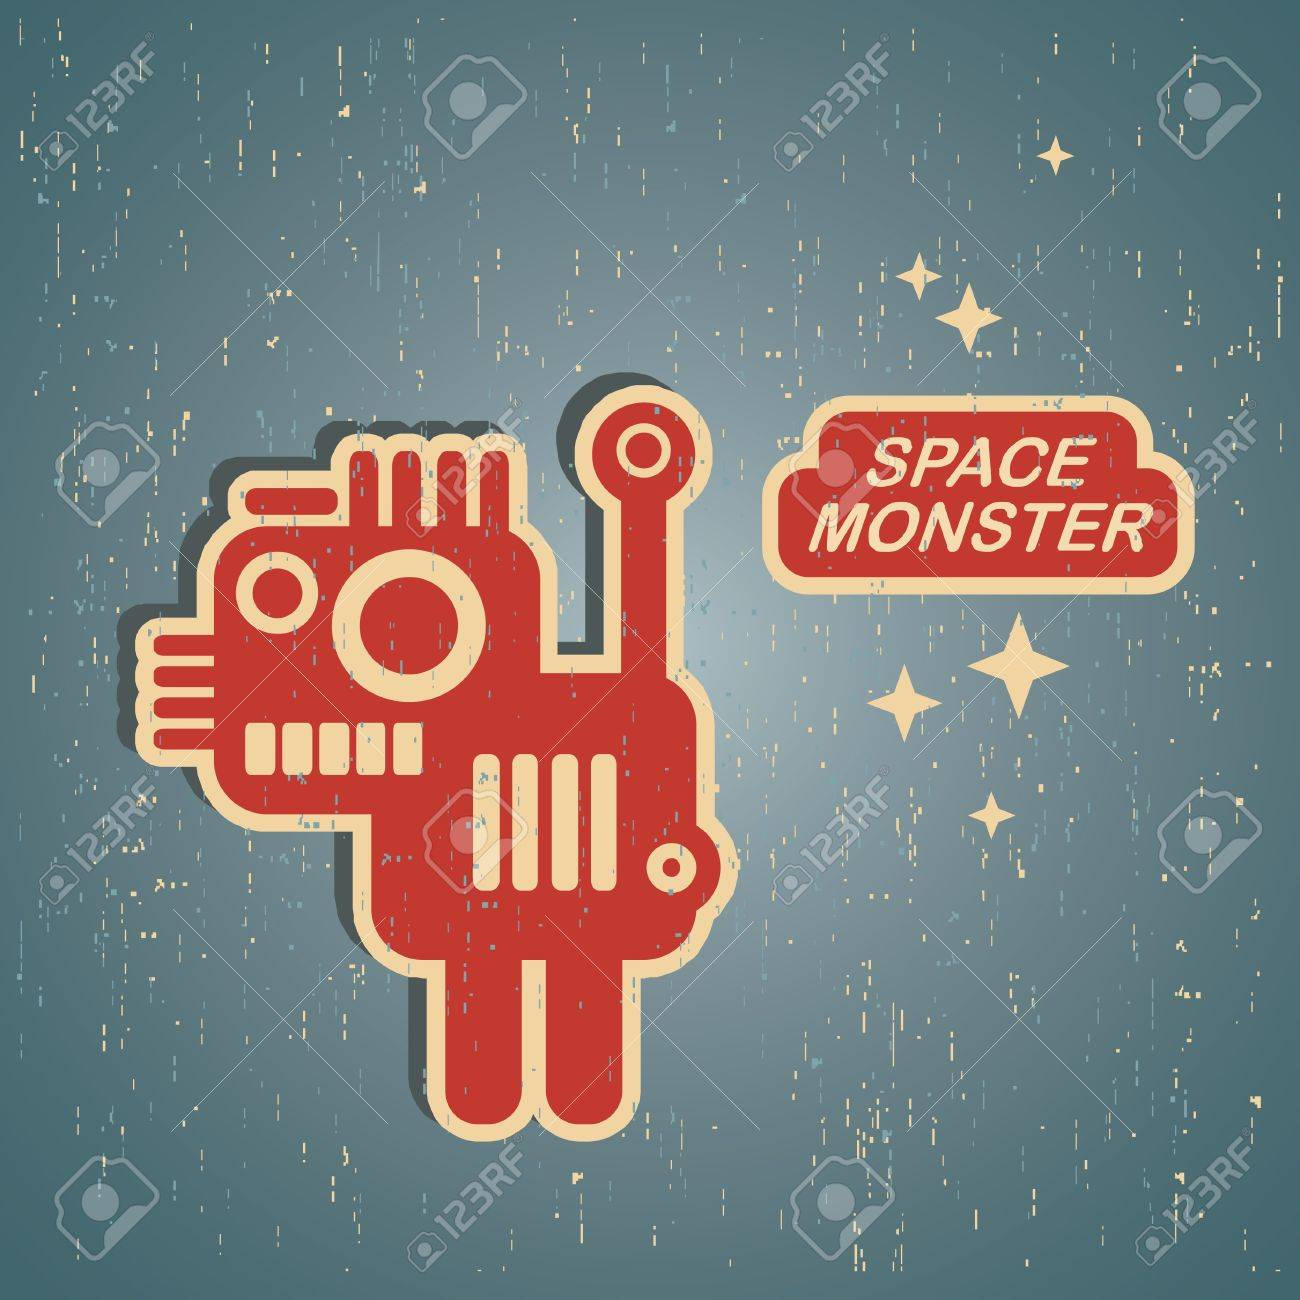 Vintage monster  Retro robot illustration Stock Vector - 15170900